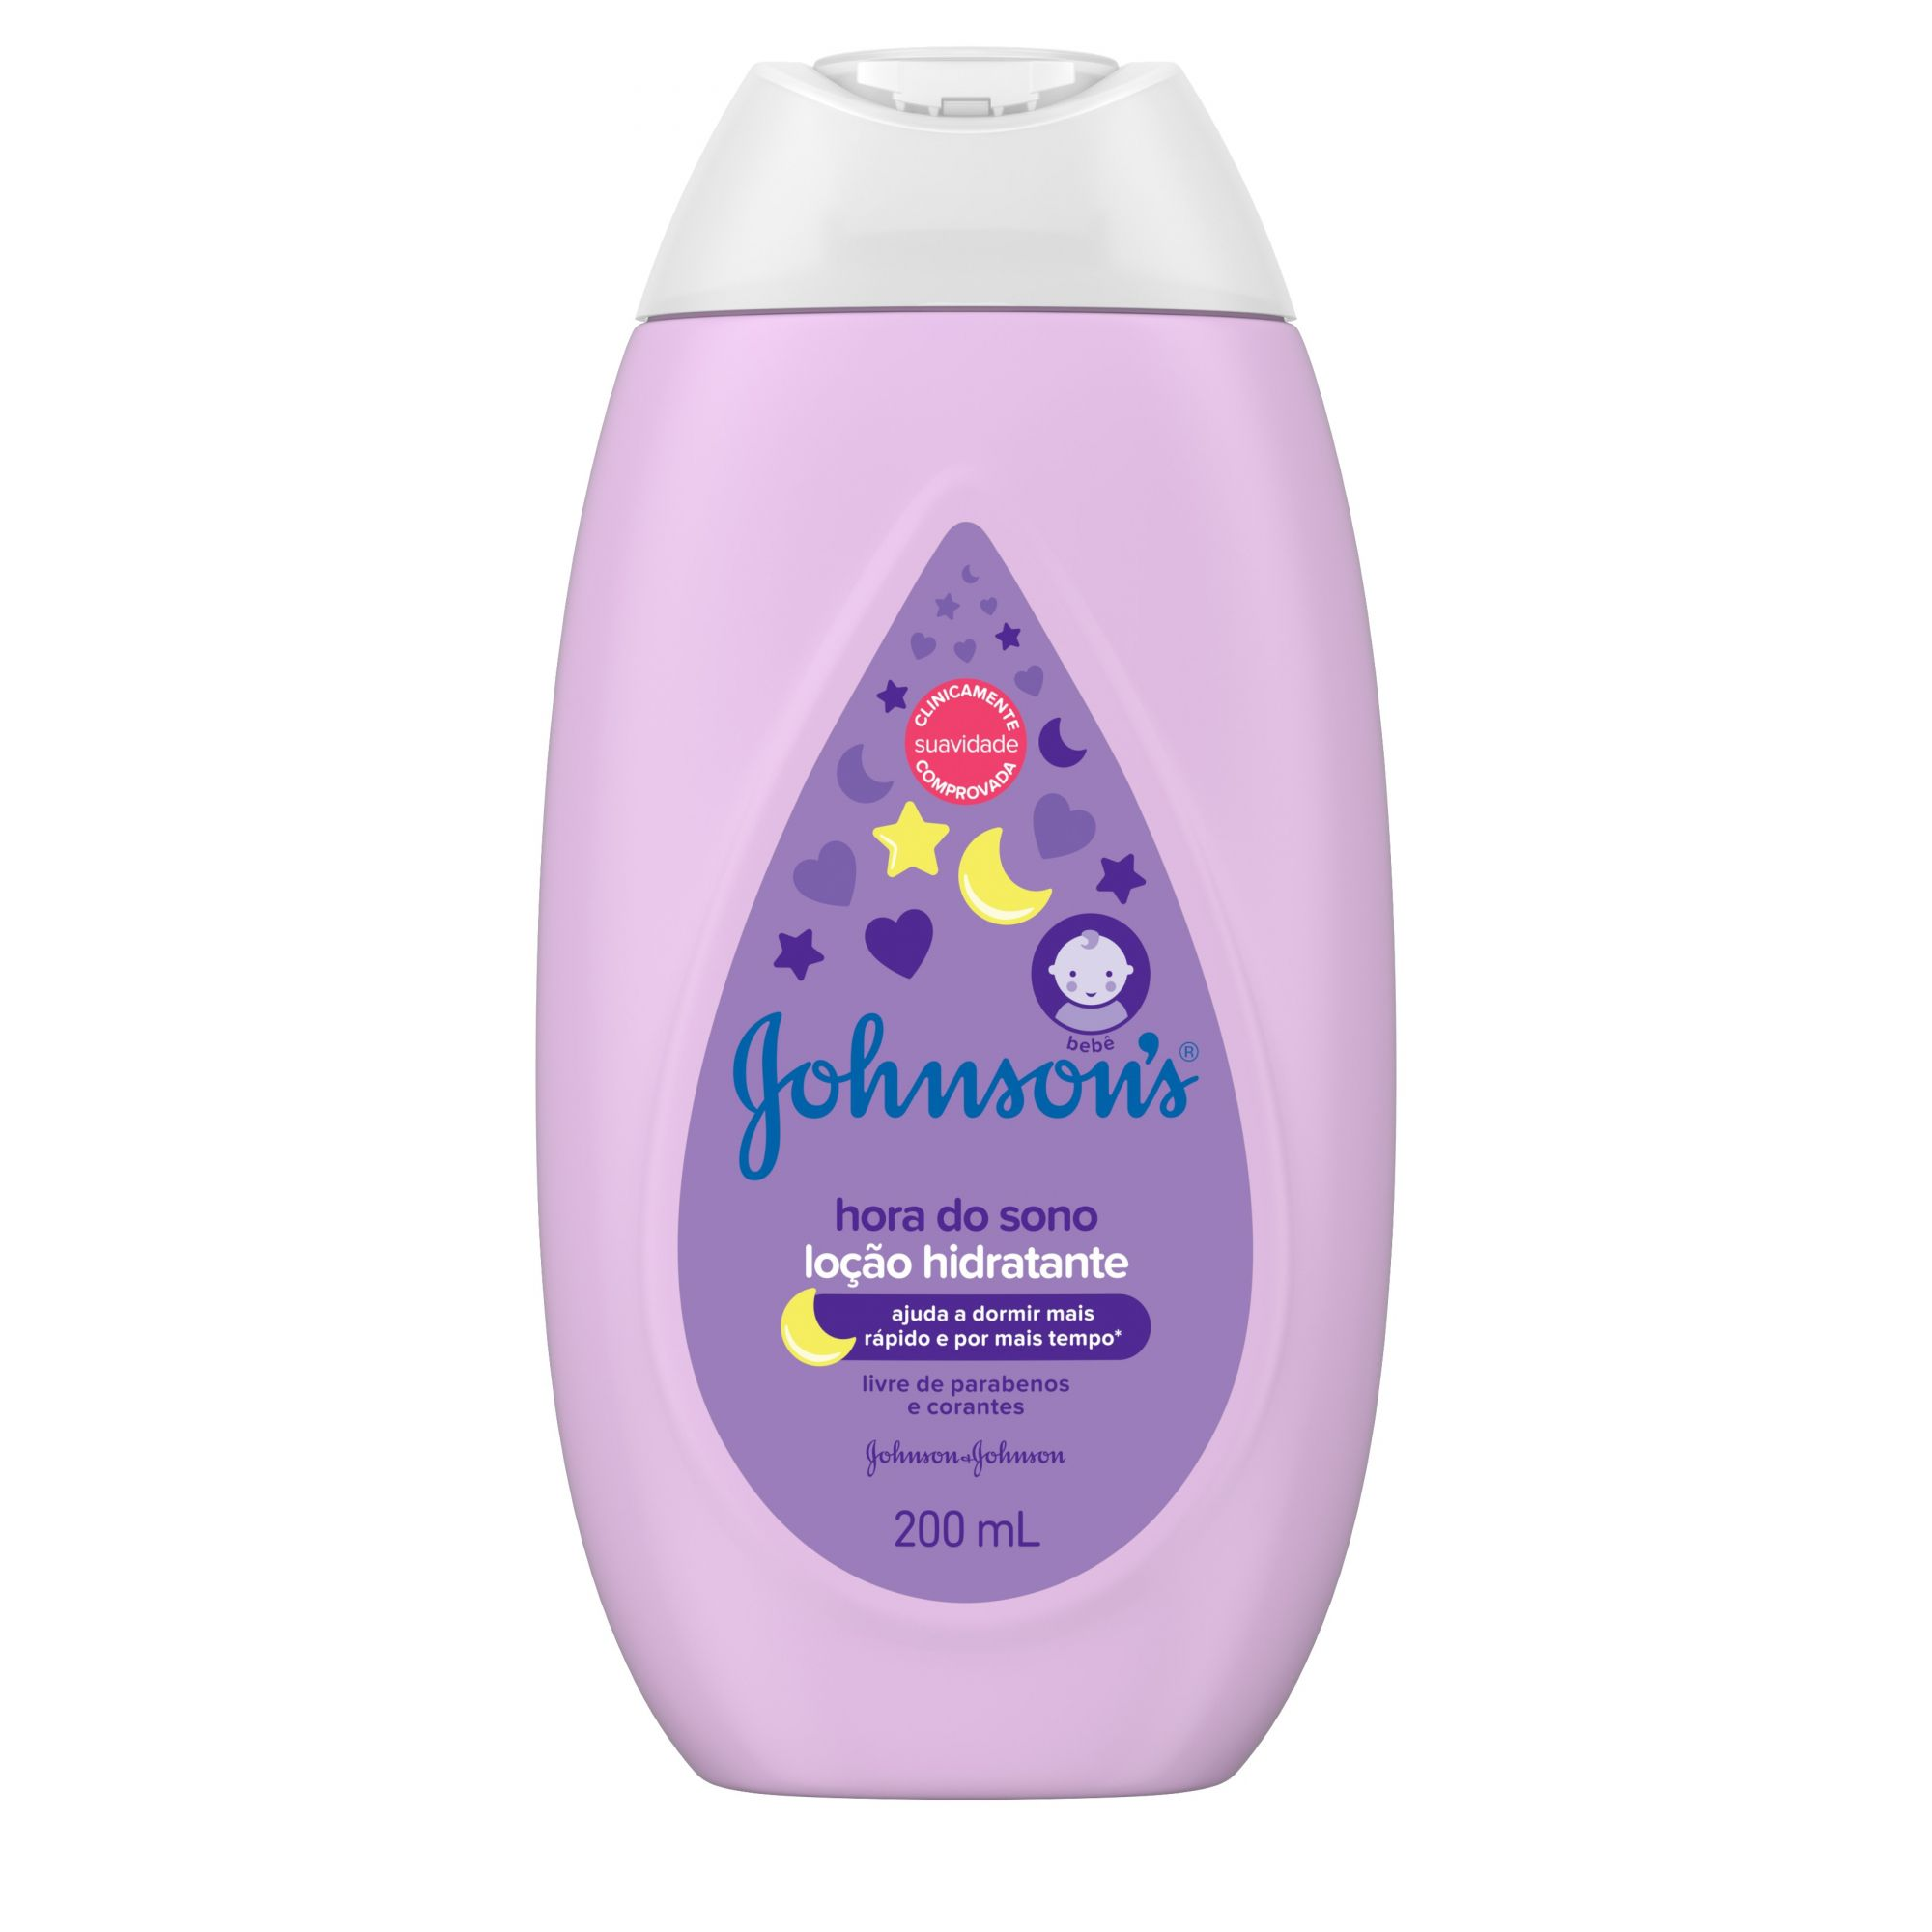 Kit 4 Hidratantes Corporal Hora do Sono Johnson's Baby 200ml